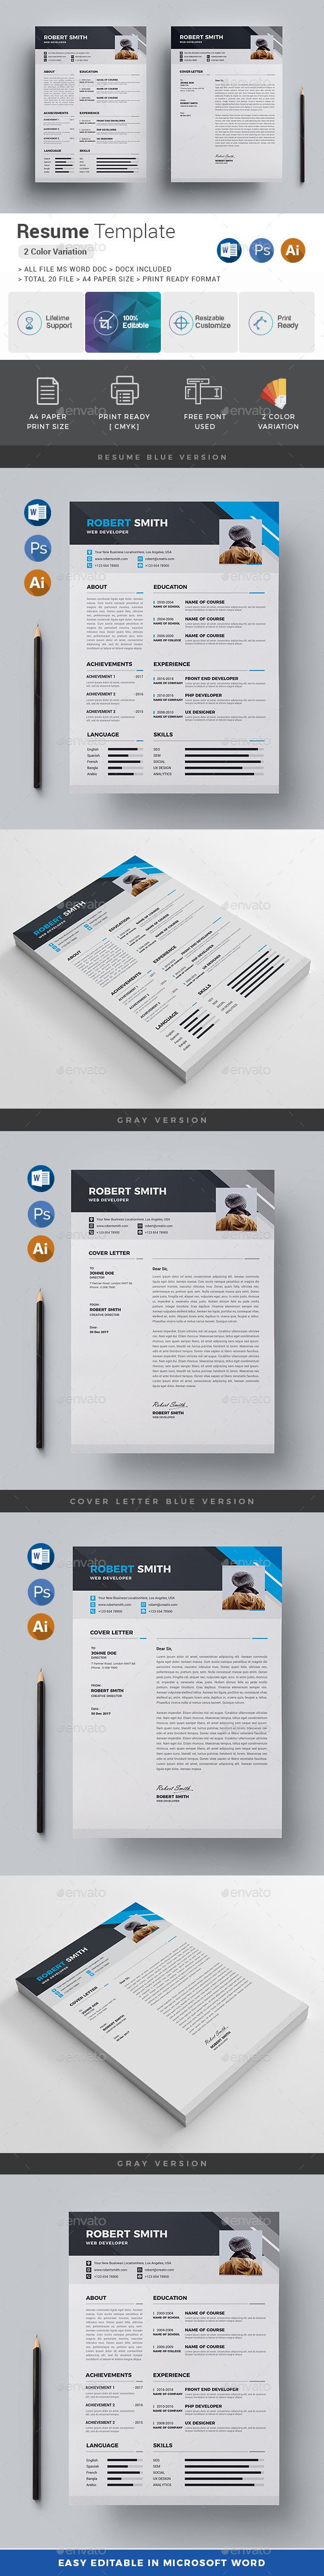 Resume 34 best Resumes images on Pinterest